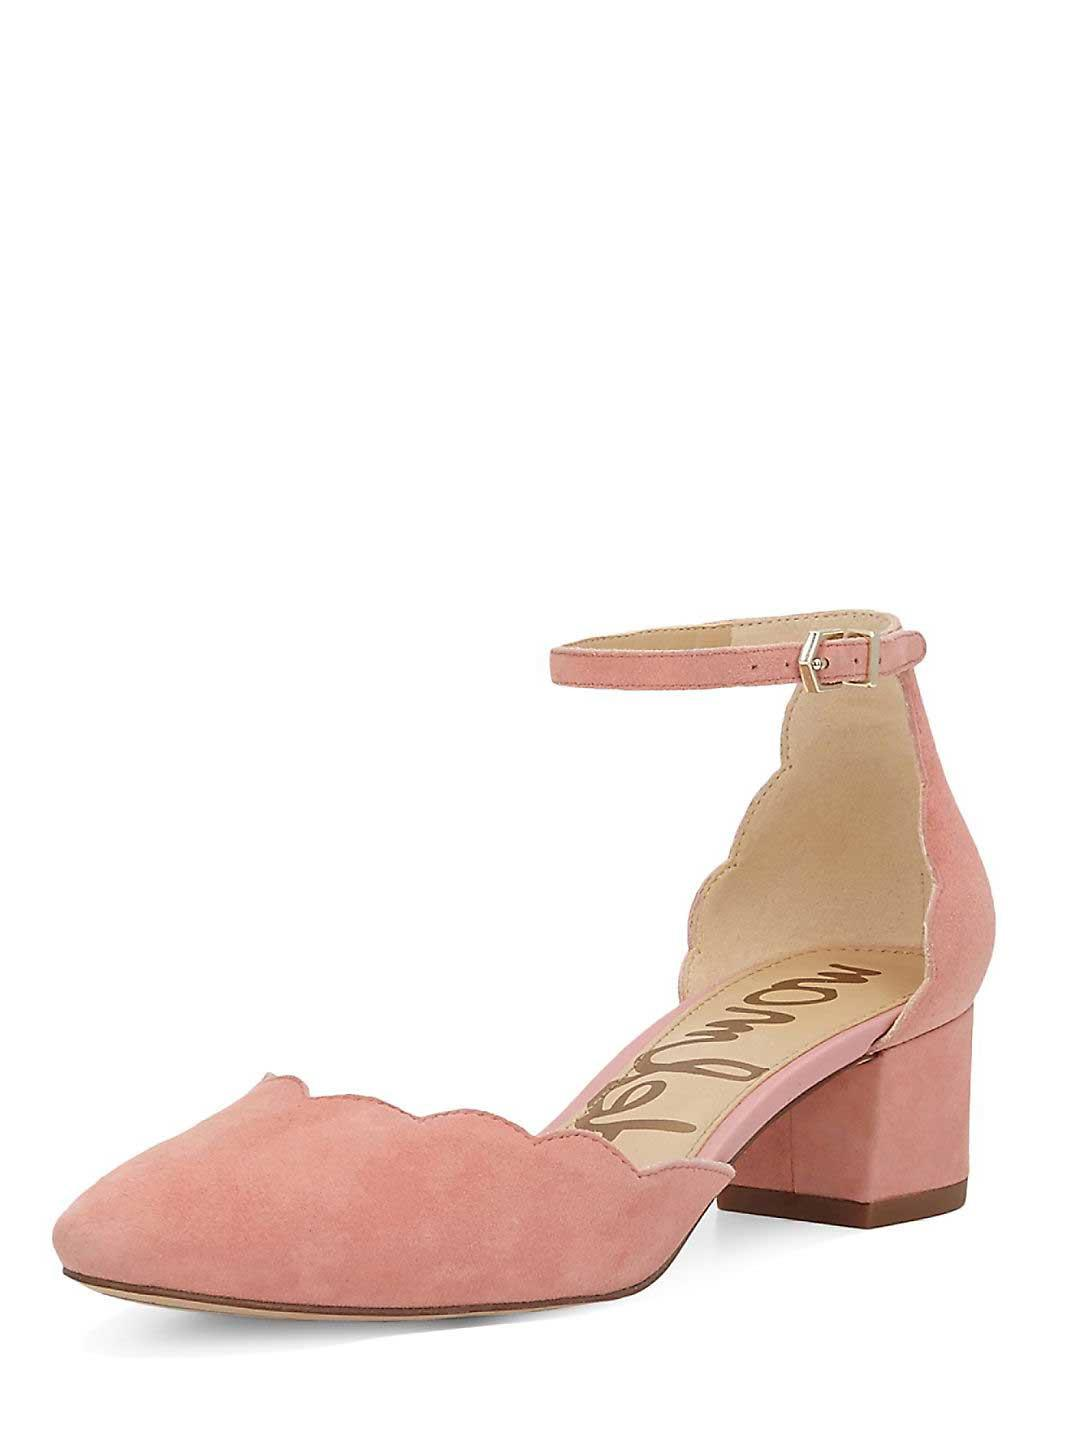 da32aafc3ac2 Lyst - Sam Edelman Lara Suede Scalloped Pump in Pink